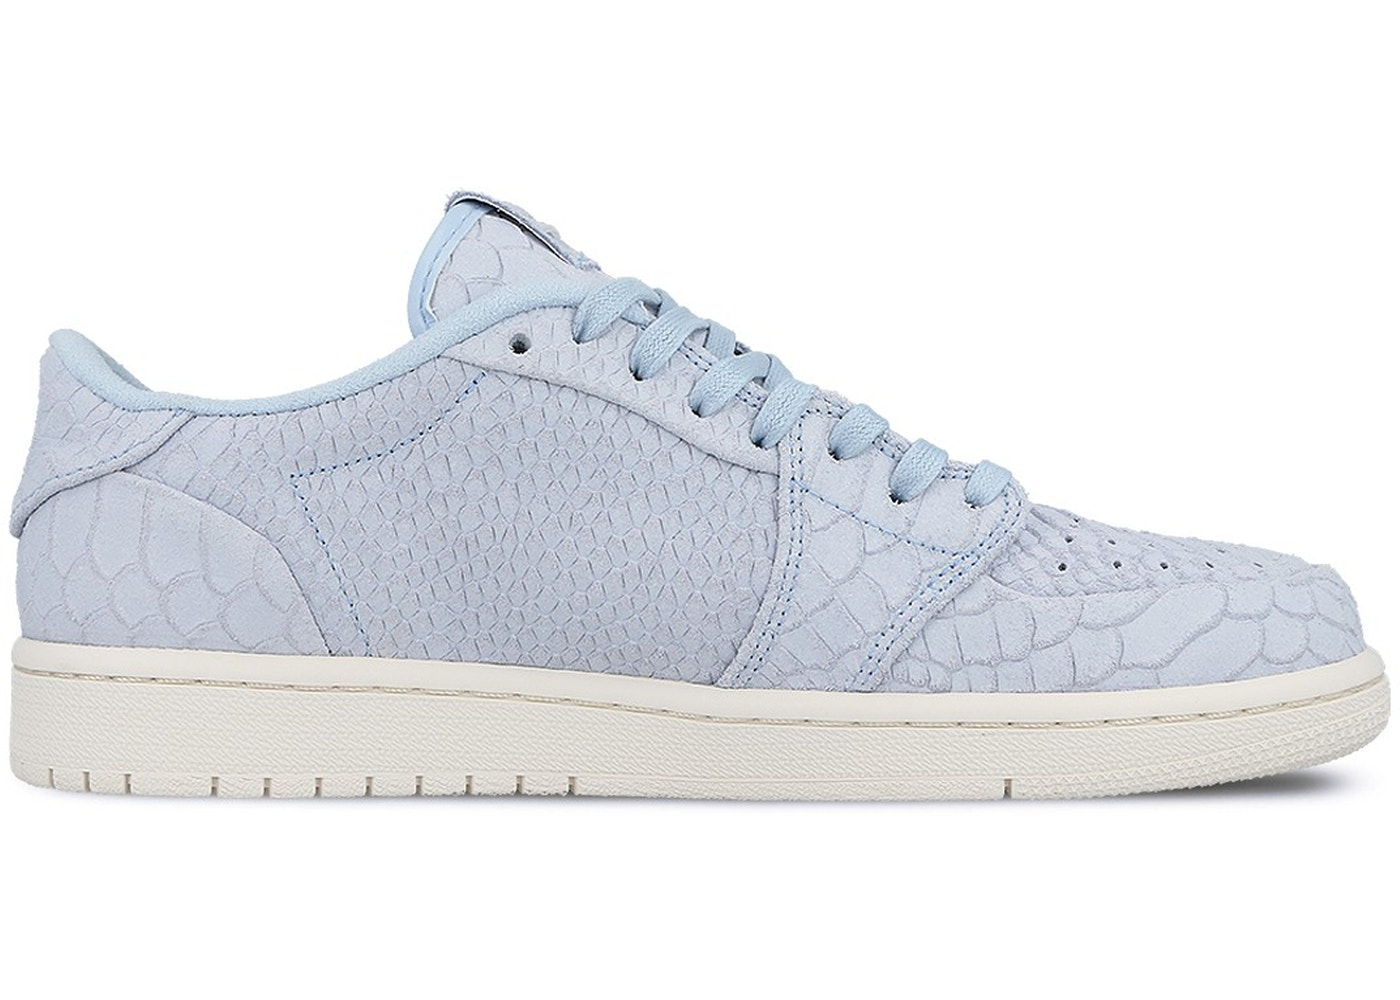 54c4d047ac6 Sell. or Ask. Size: 11. View All Bids. Jordan 1 Retro Low NS Ice Blue